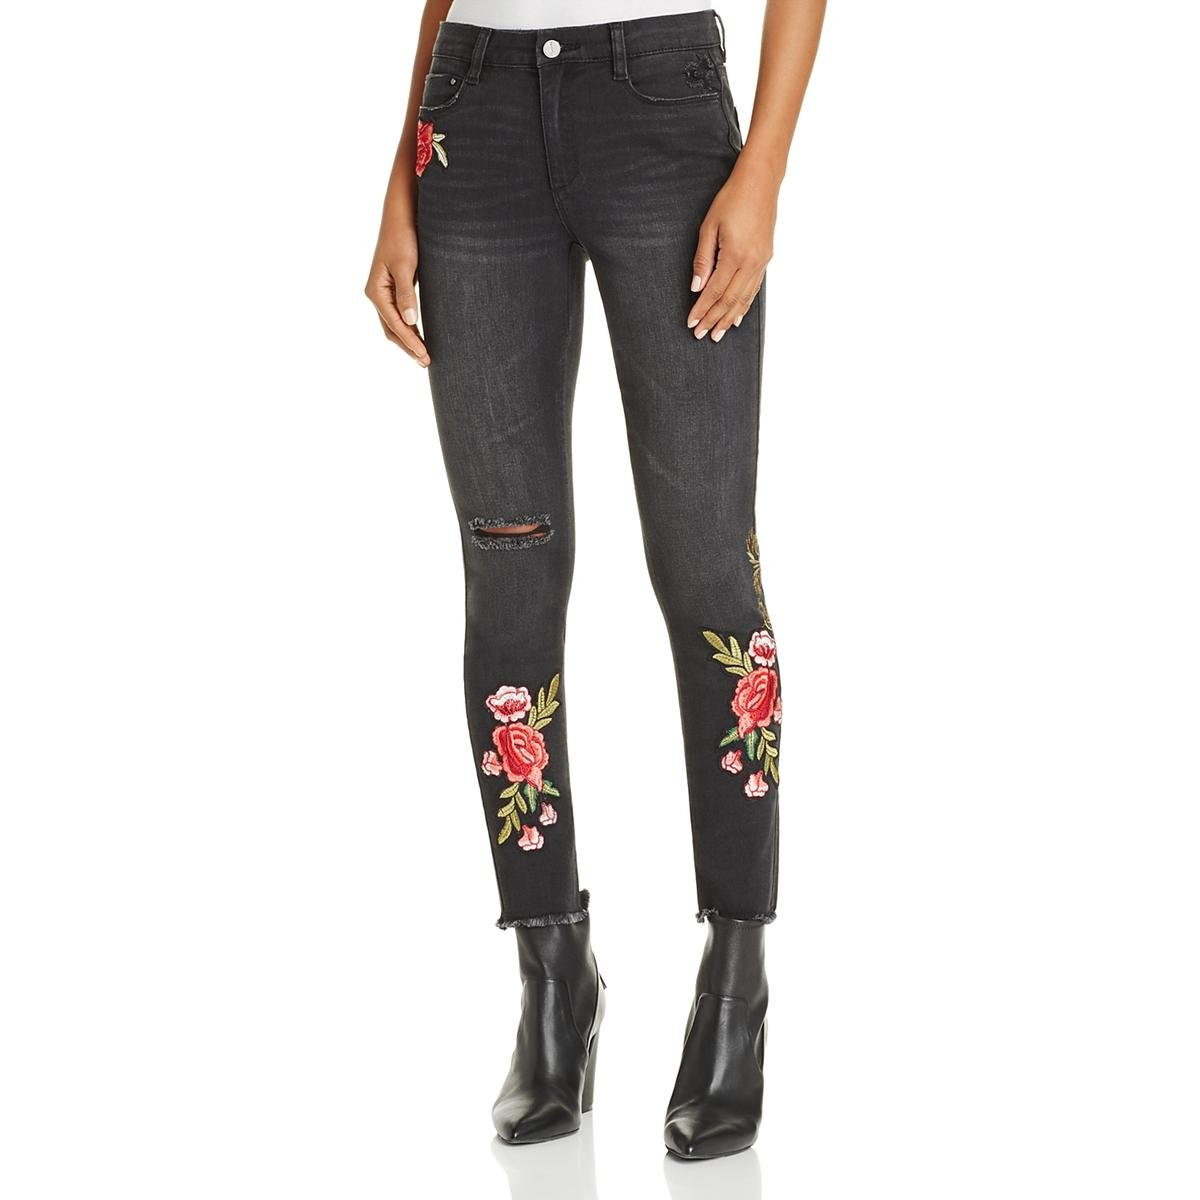 Banjara Womens Skinny Embroidered Ankle Jeans